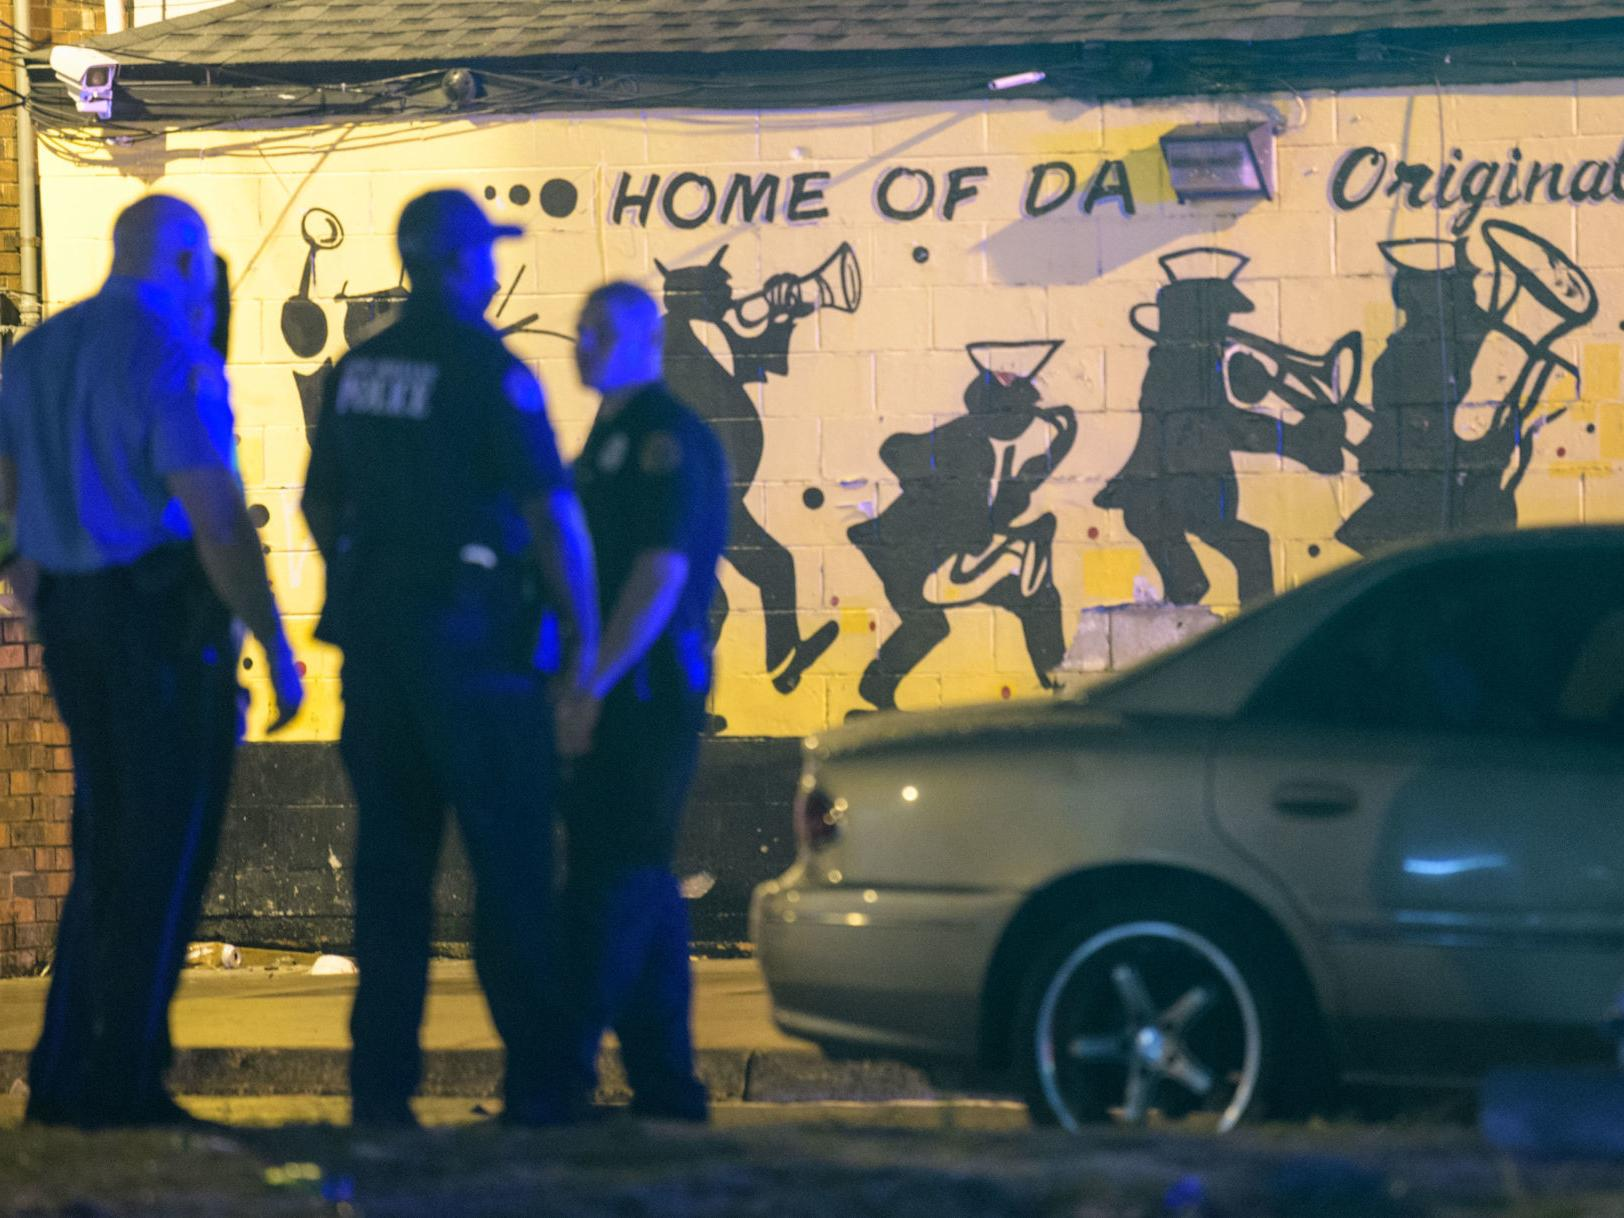 Sources New Orleans Gang Associate The Apparent Target In Deadly